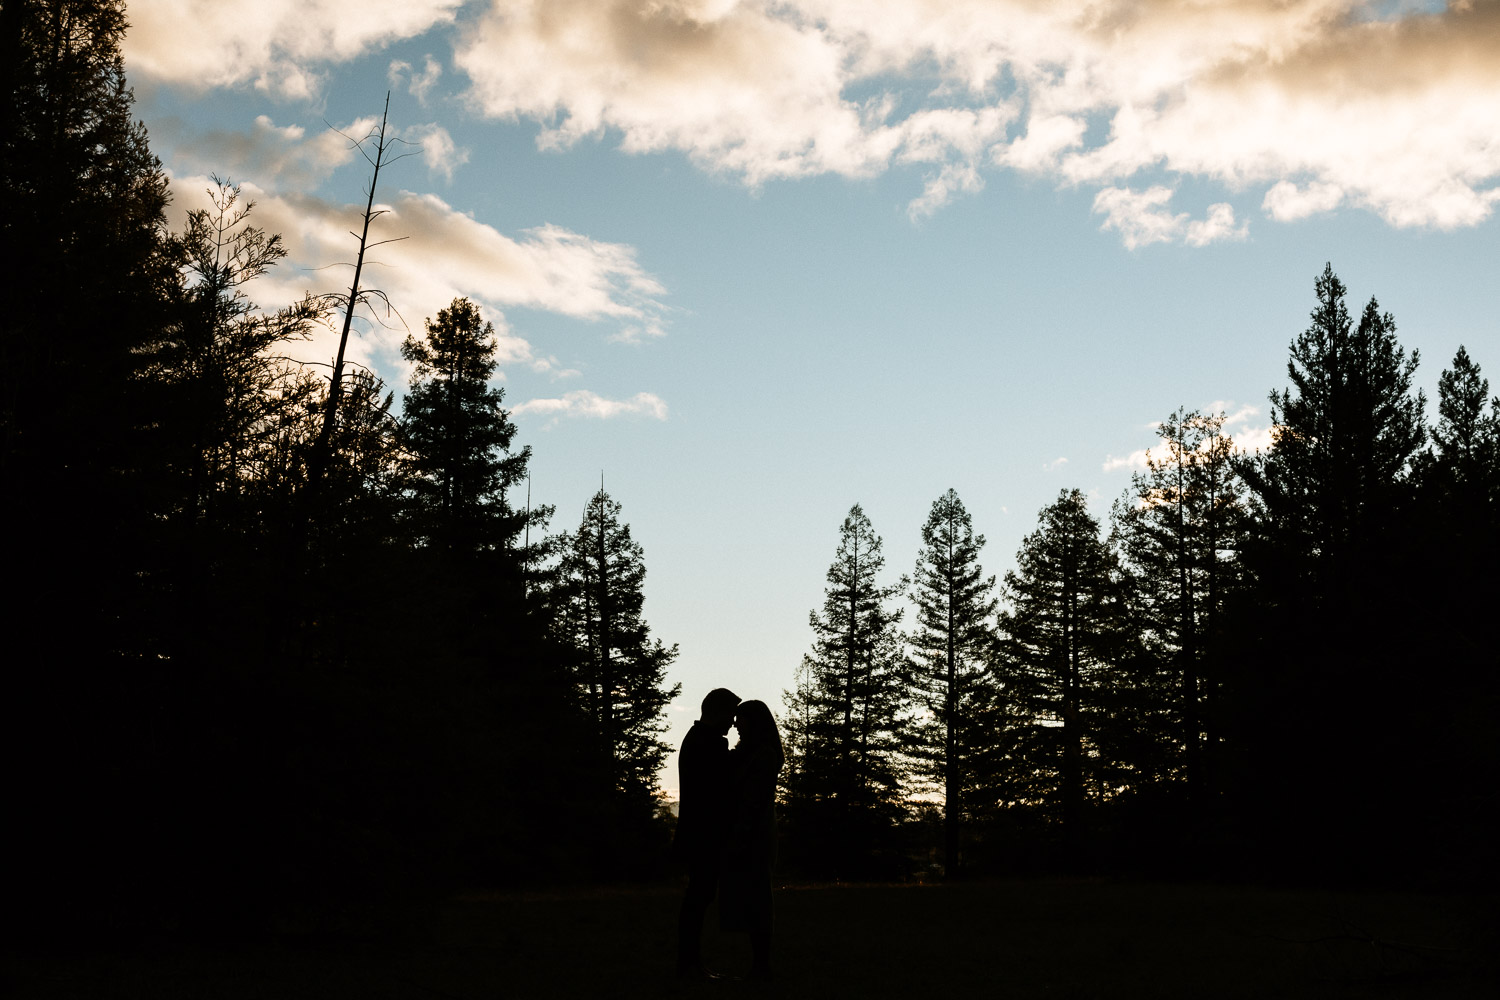 canberra-engagement-photographer-natural-candid-documentary-portrait-couple-pialligo-redwood-forest-silhouette-moody-dark